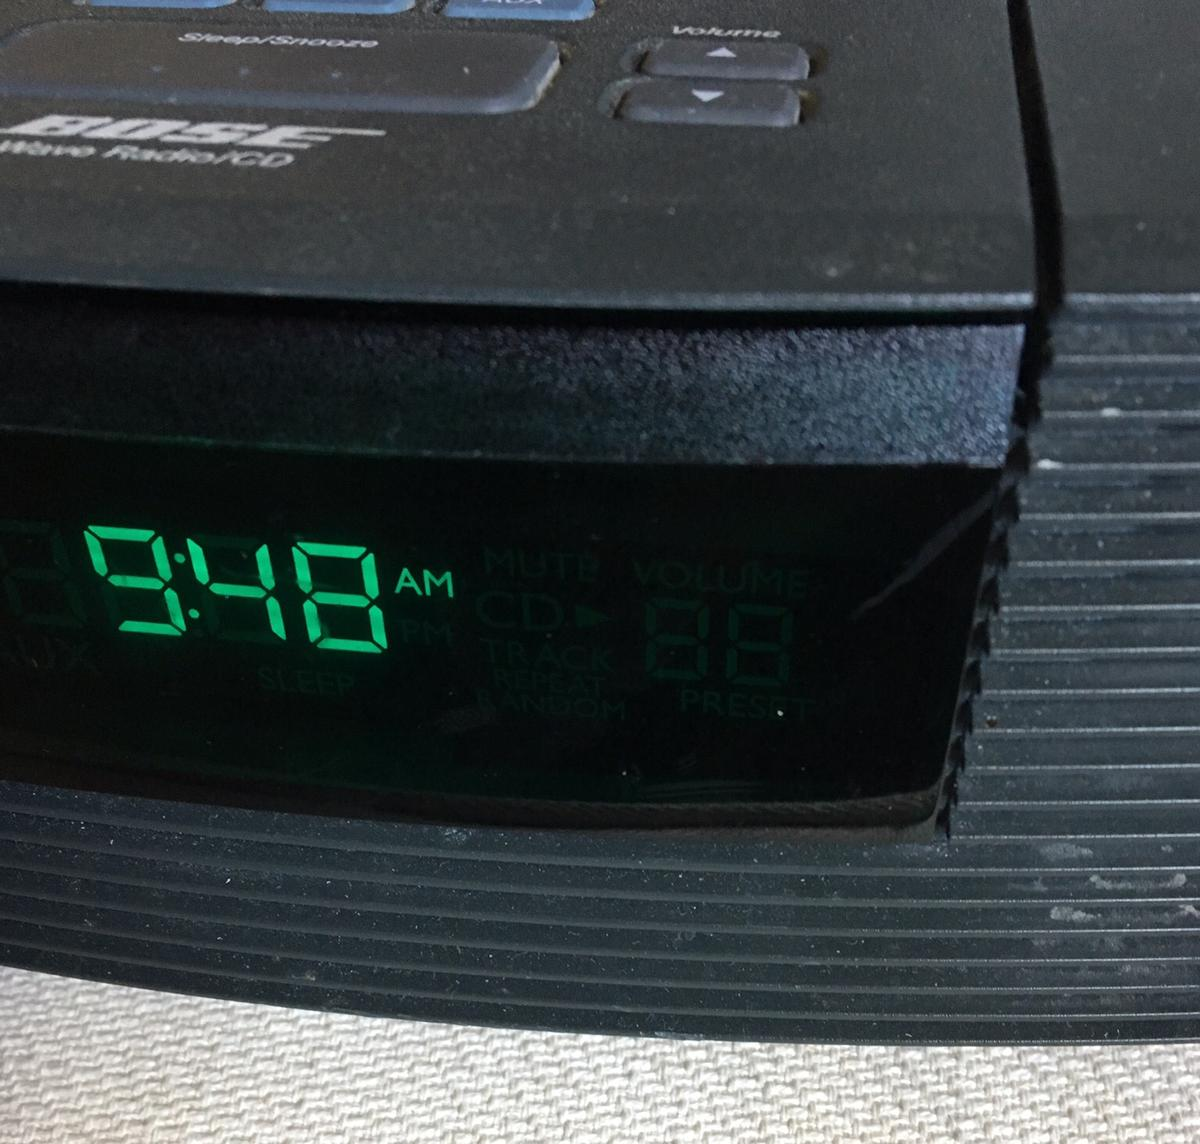 Bose wave radio/CD player with iPod conn kit in NN4